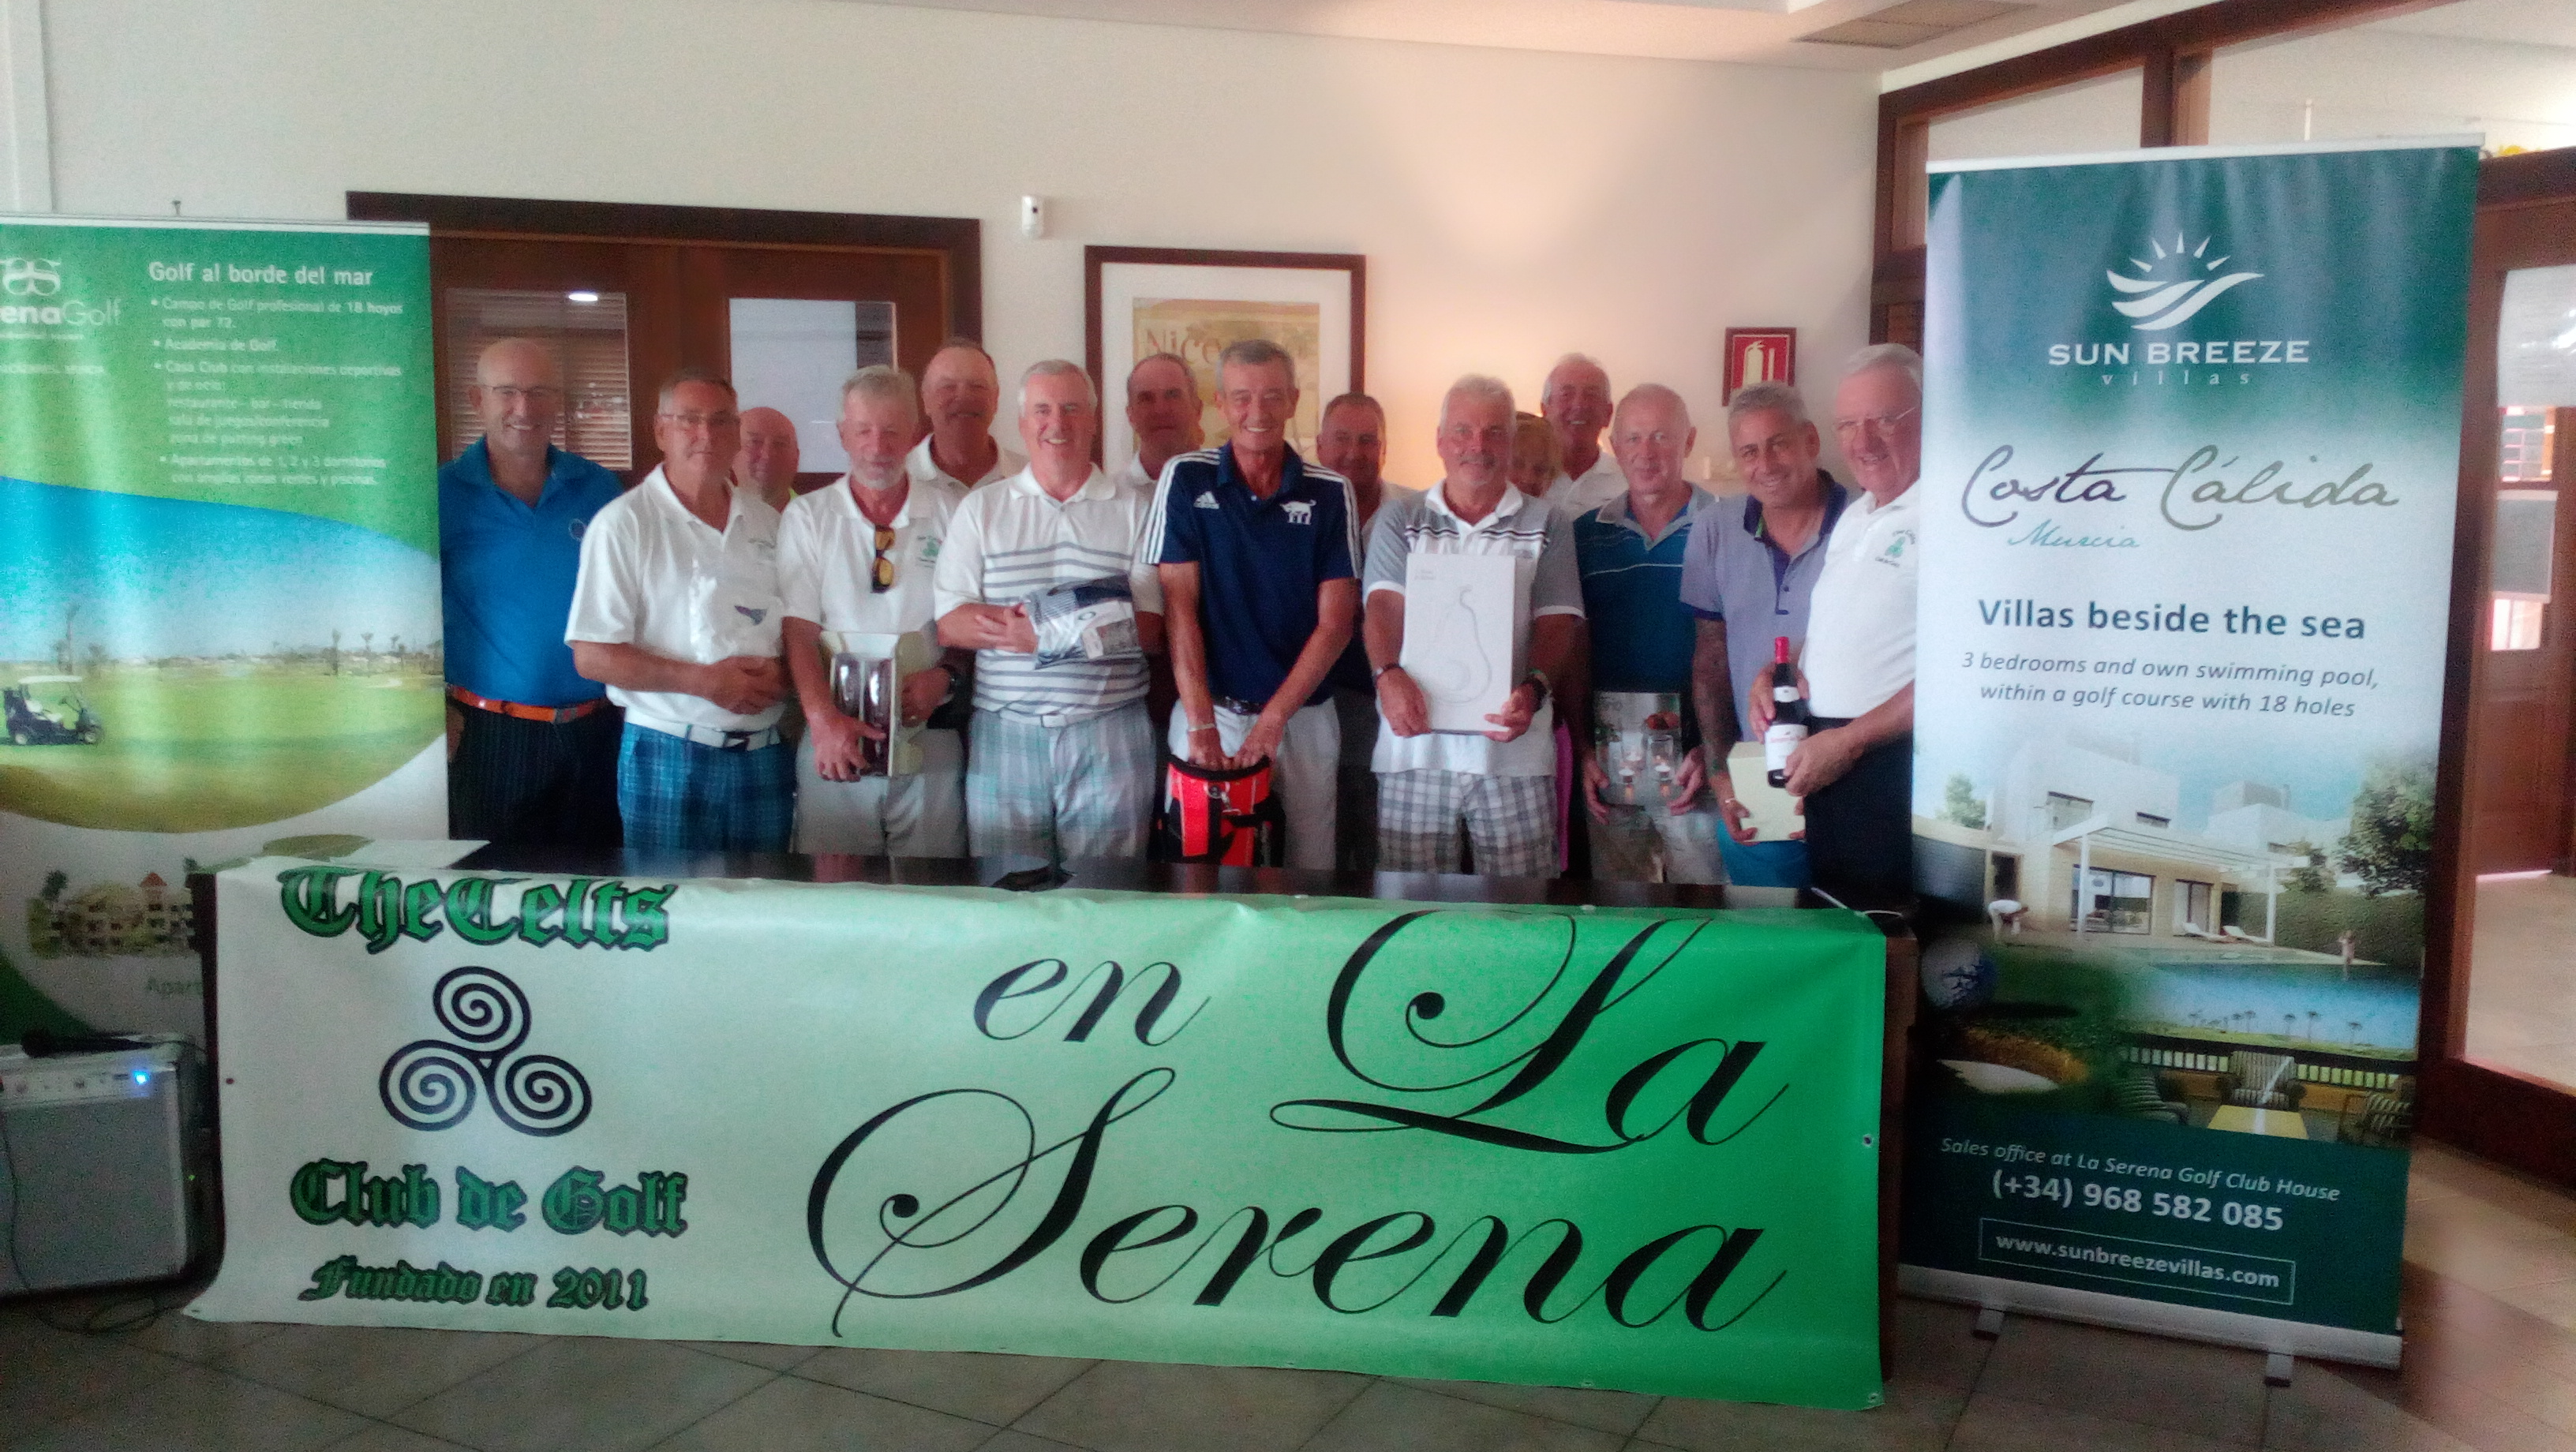 Celts Golf Society Open Day The Leader Newspaper # Muebles Andre Kevin